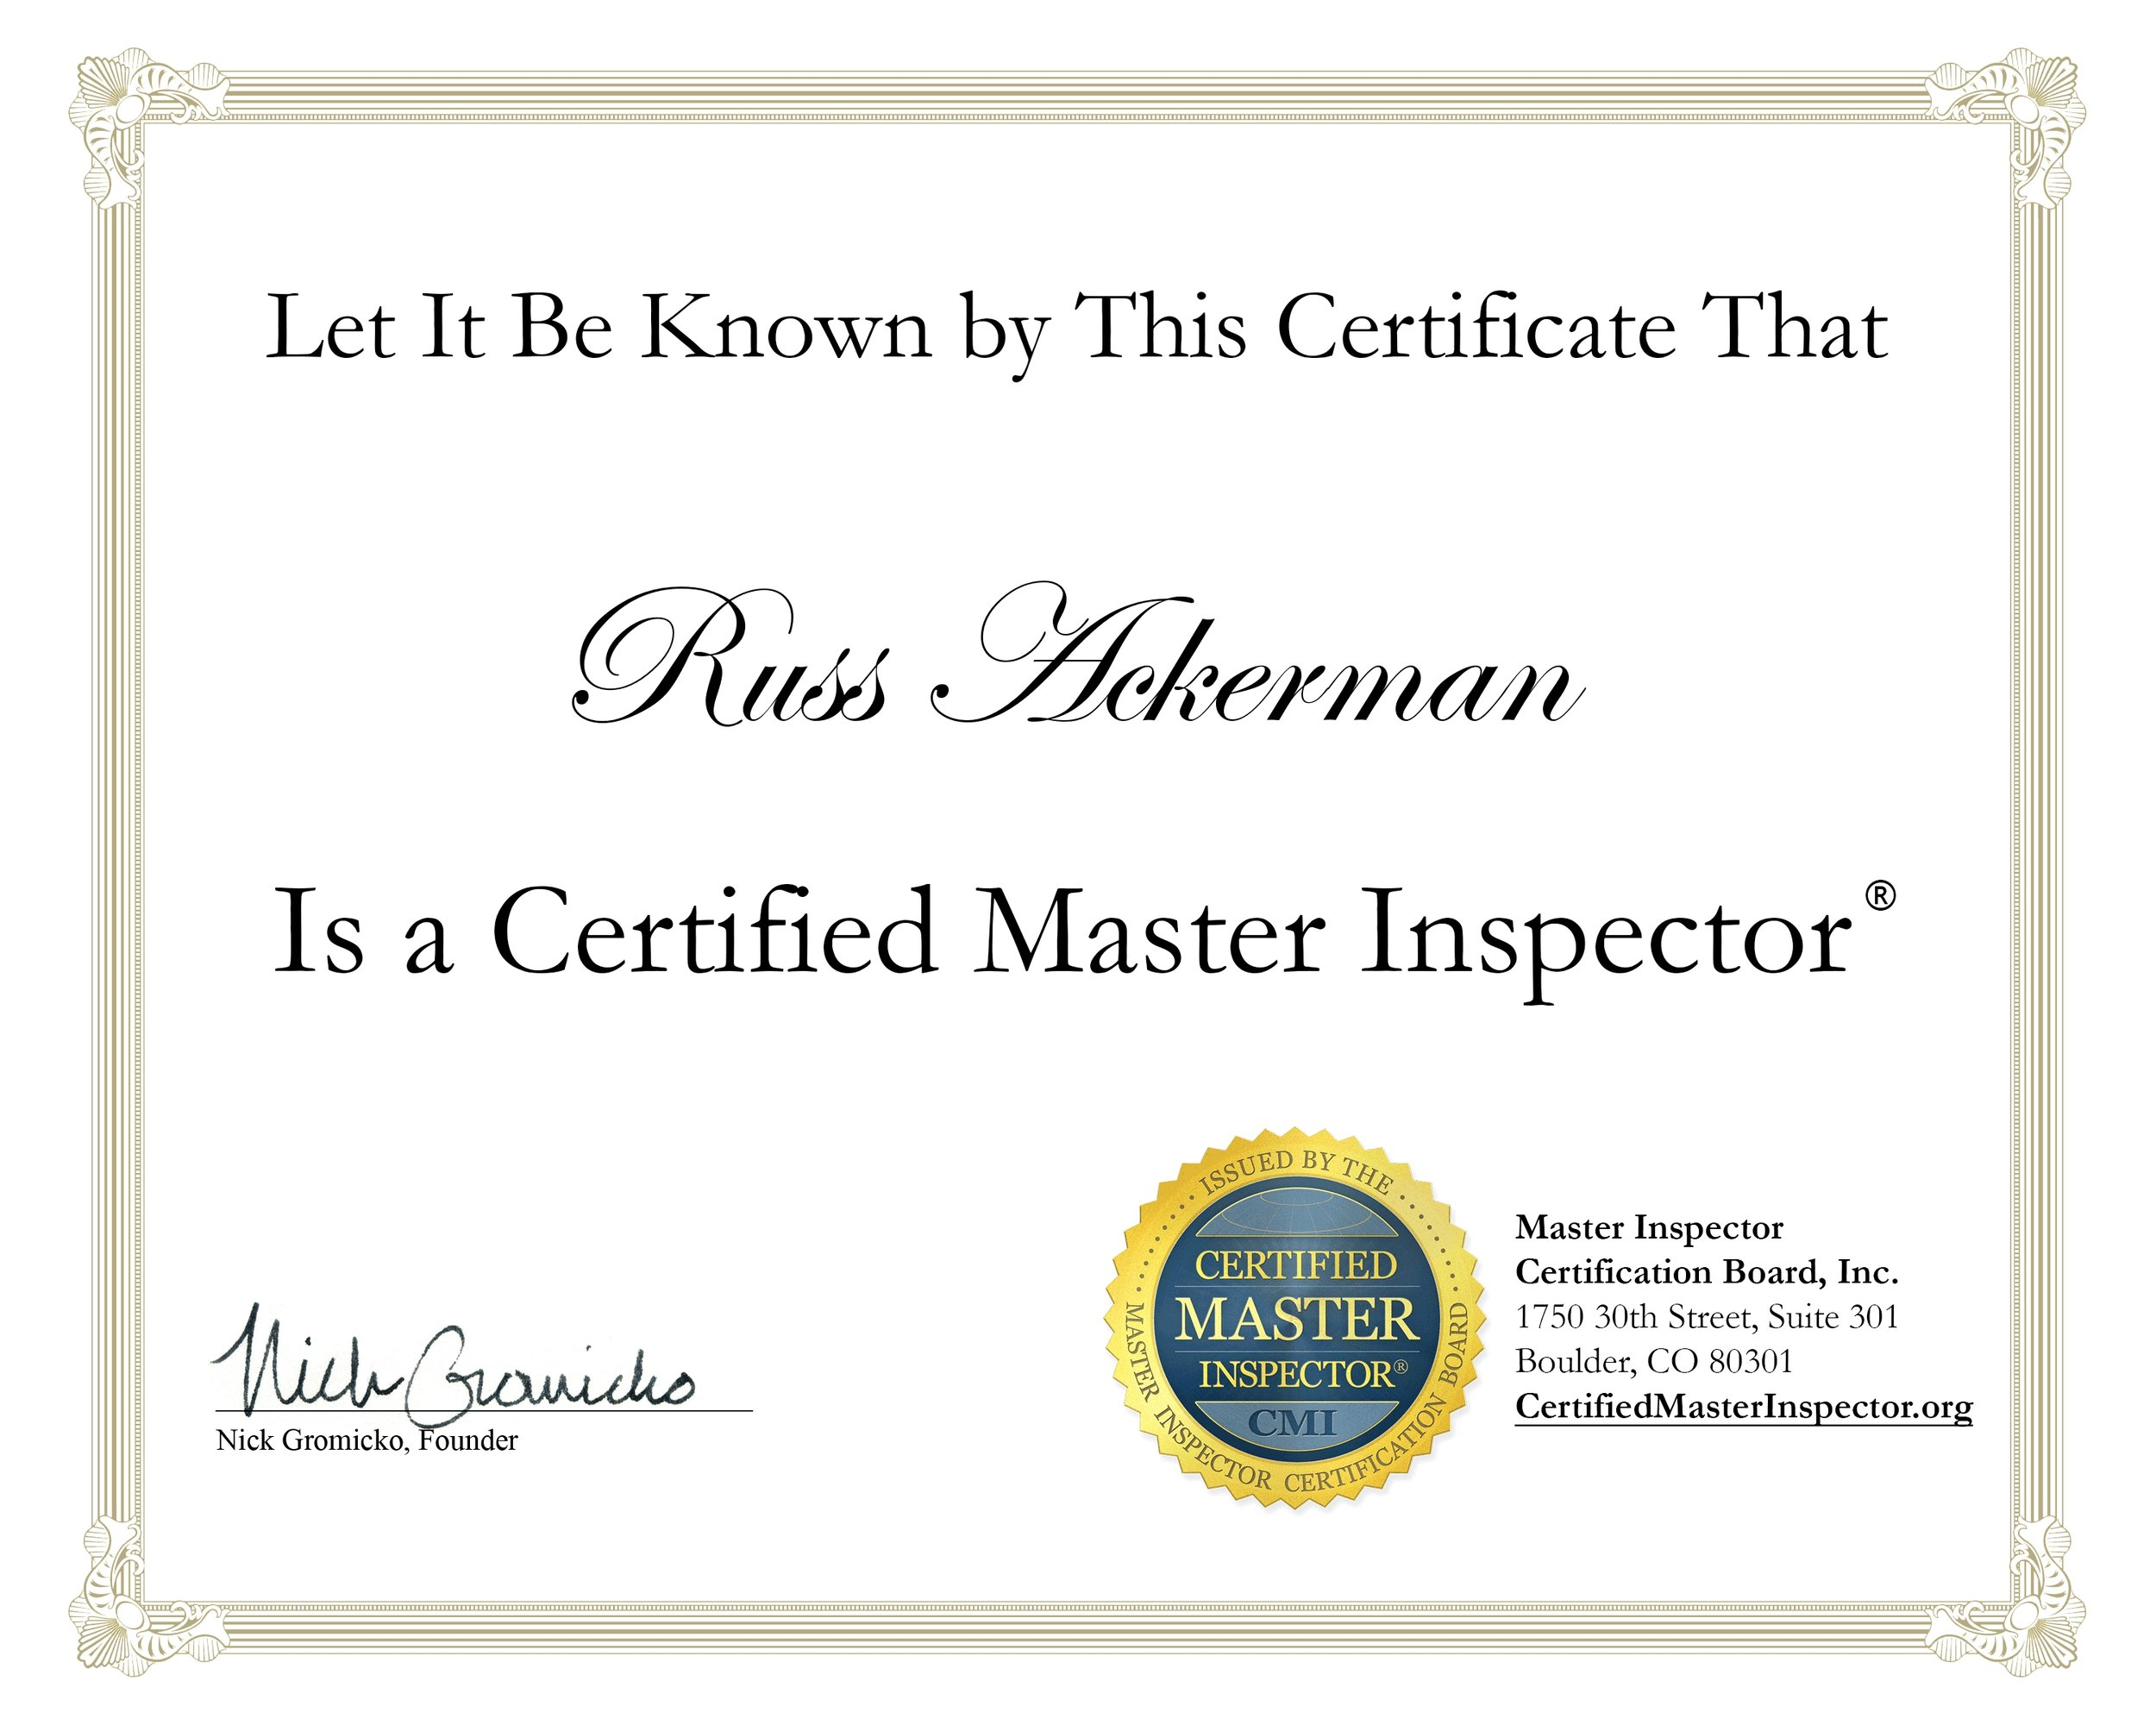 Why hire a Certified Master Inspector?  Experience, dedicated to education and a proven record in the inspection industry.